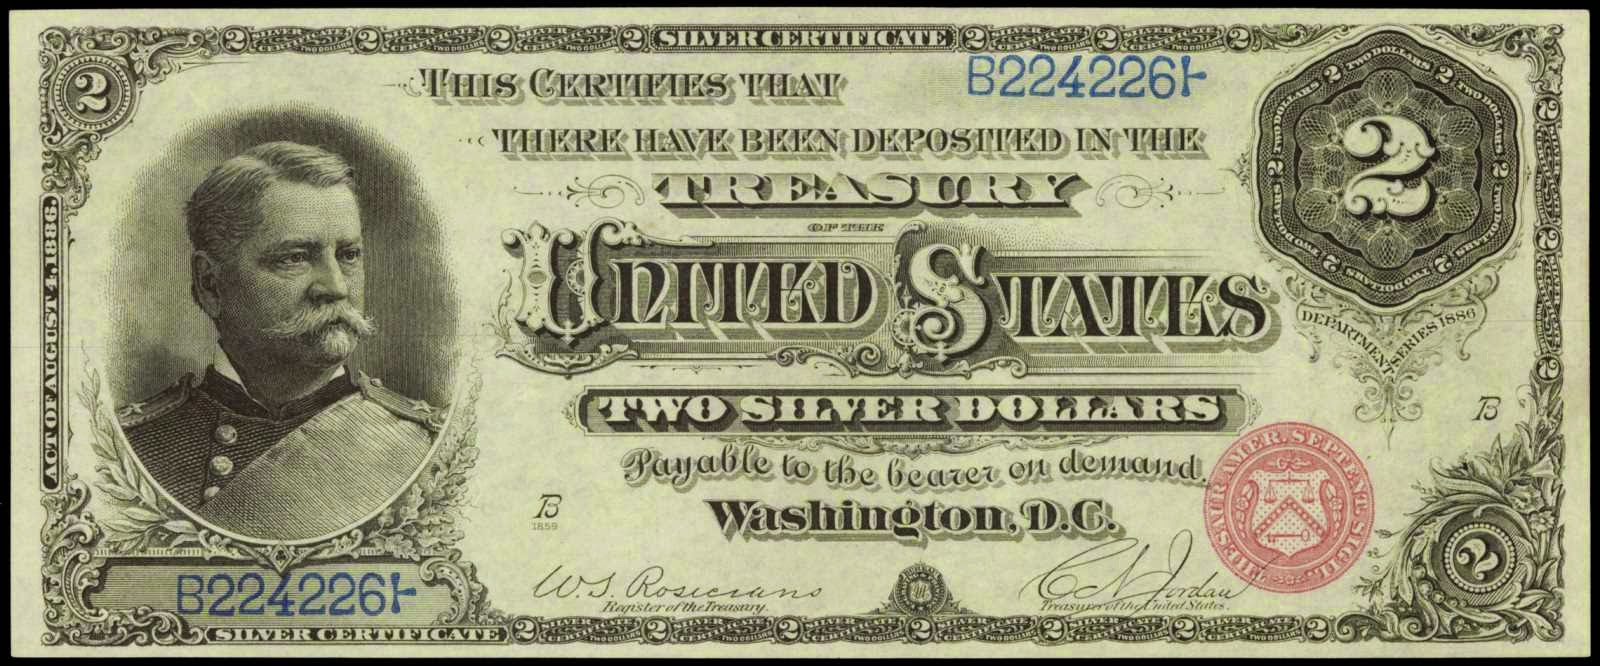 1886 2 Dollar bill Silver Certificate General Winfield Scott Hancock